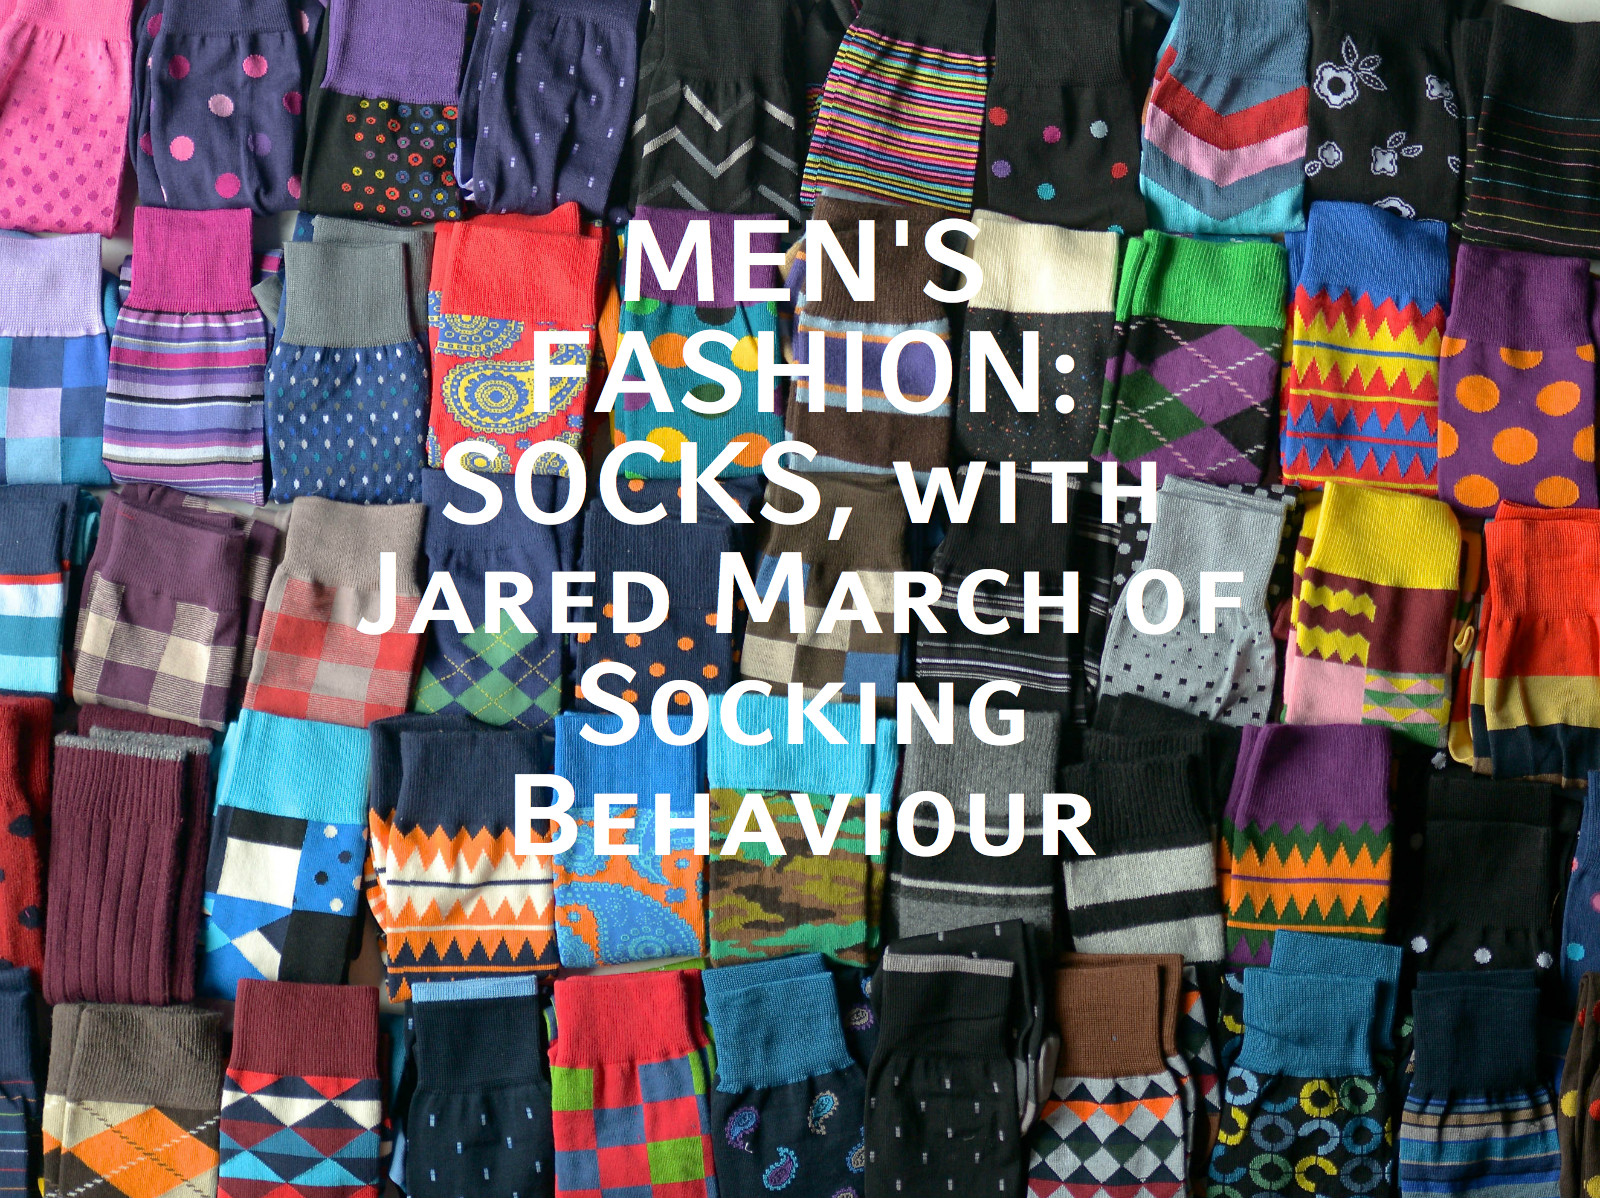 fa3e5d8d35294 Men's Fashion: Socks, with Jared March of Socking Behaviour